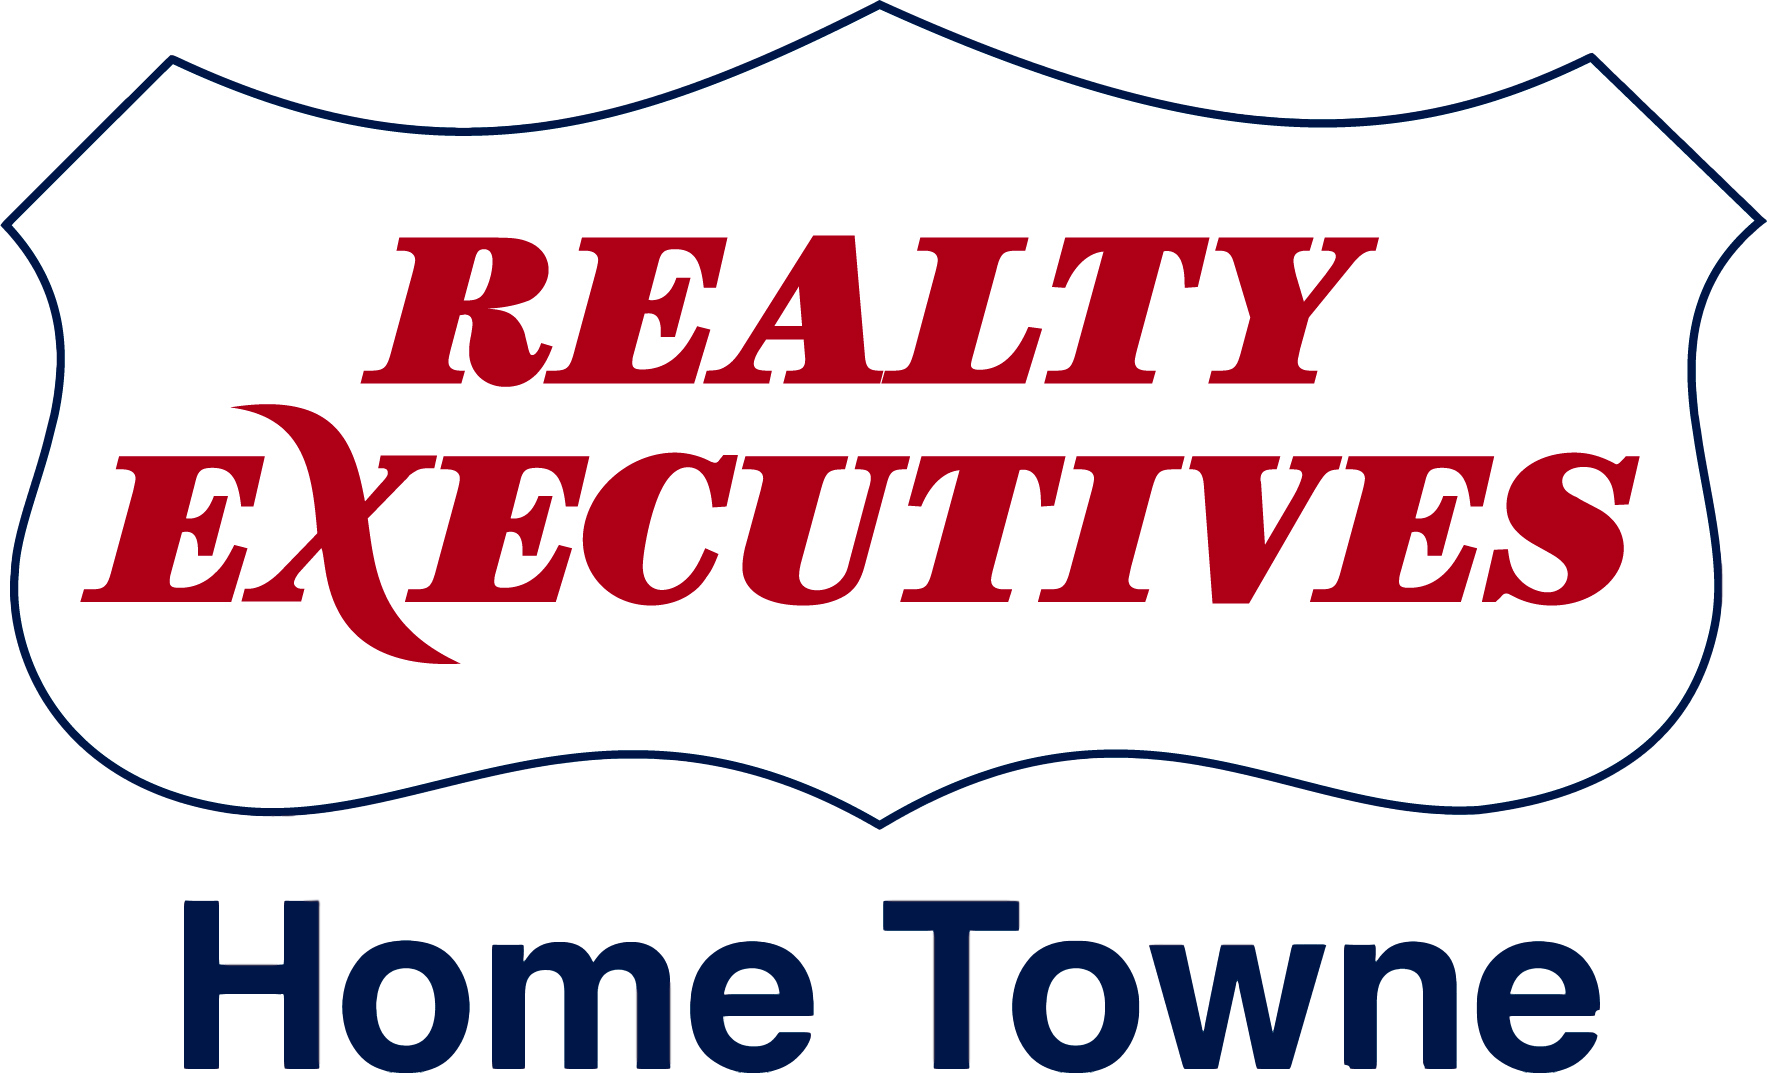 only the best agents are called executives realty executives home towne